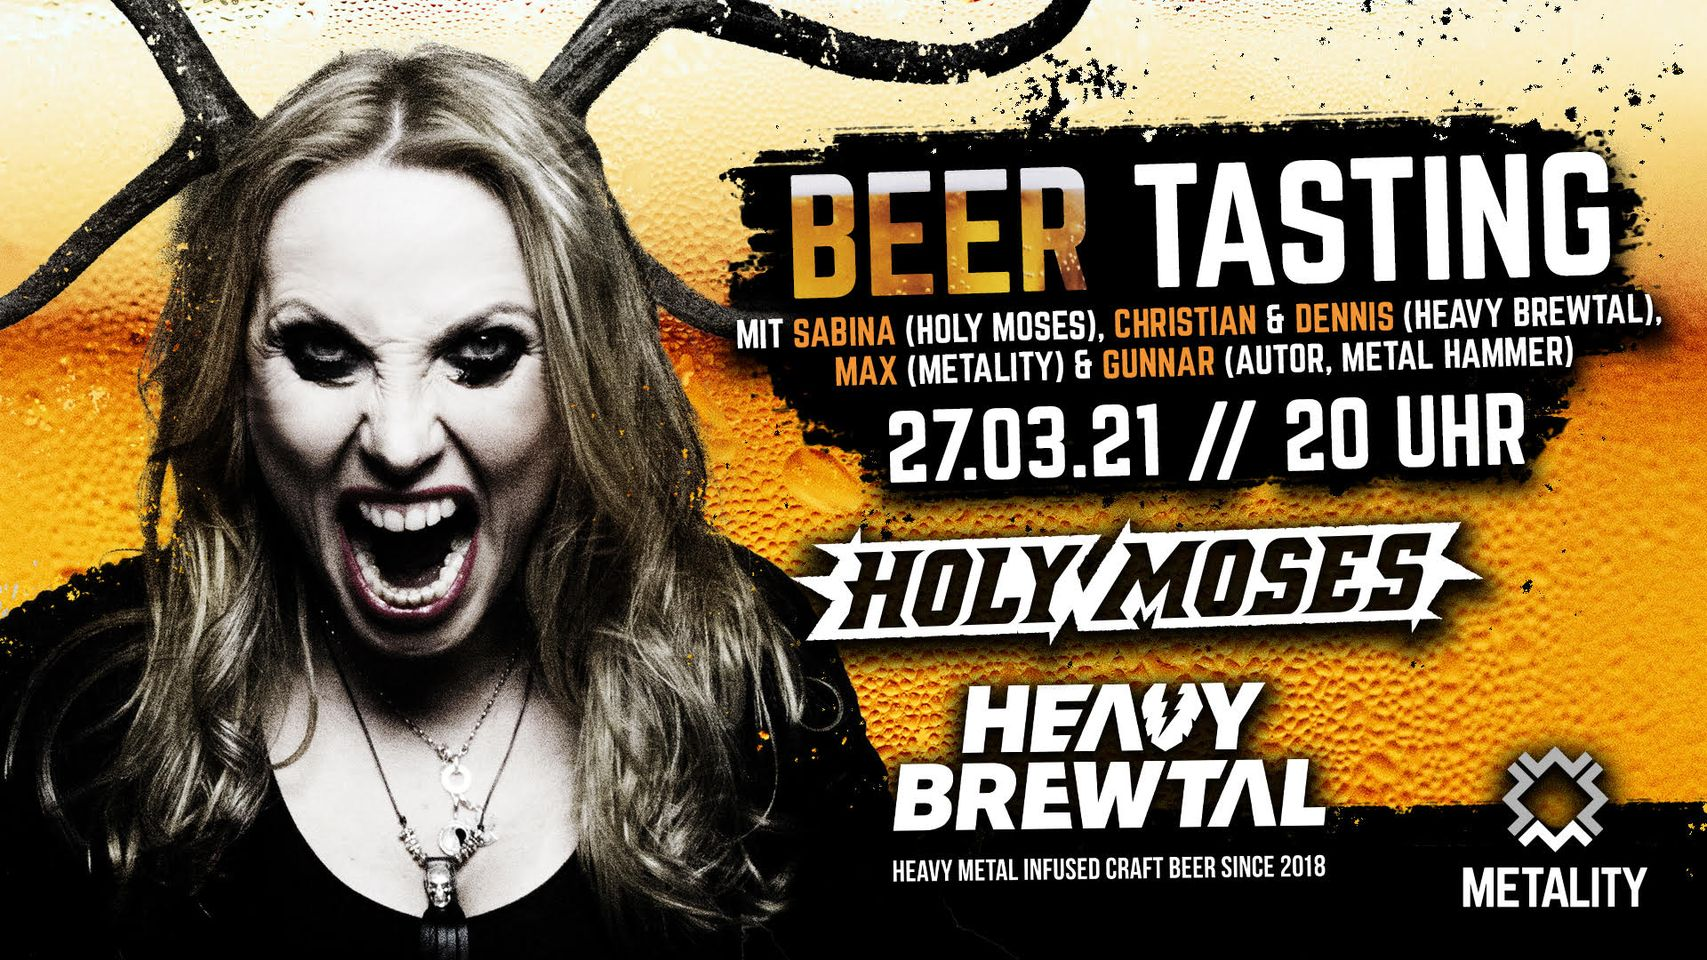 4. Metality Beer Tasting with Heavy Brewtal & Special Guest